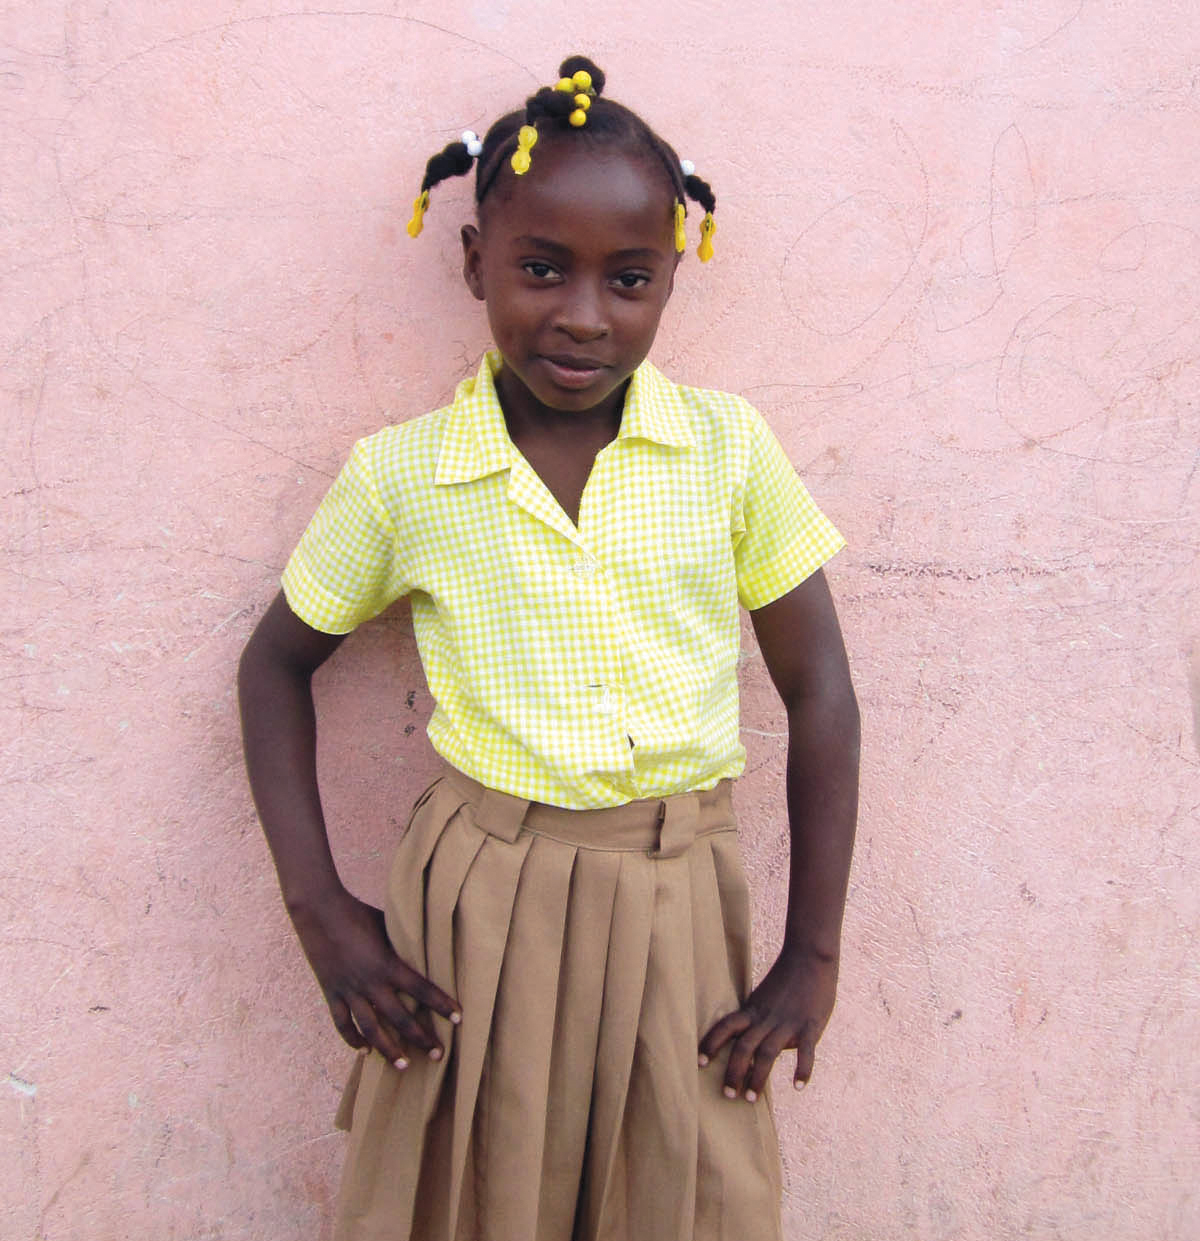 Ange Dona Desrosiers is from the same school Roland attended at New Missions, and is sponsored by him.